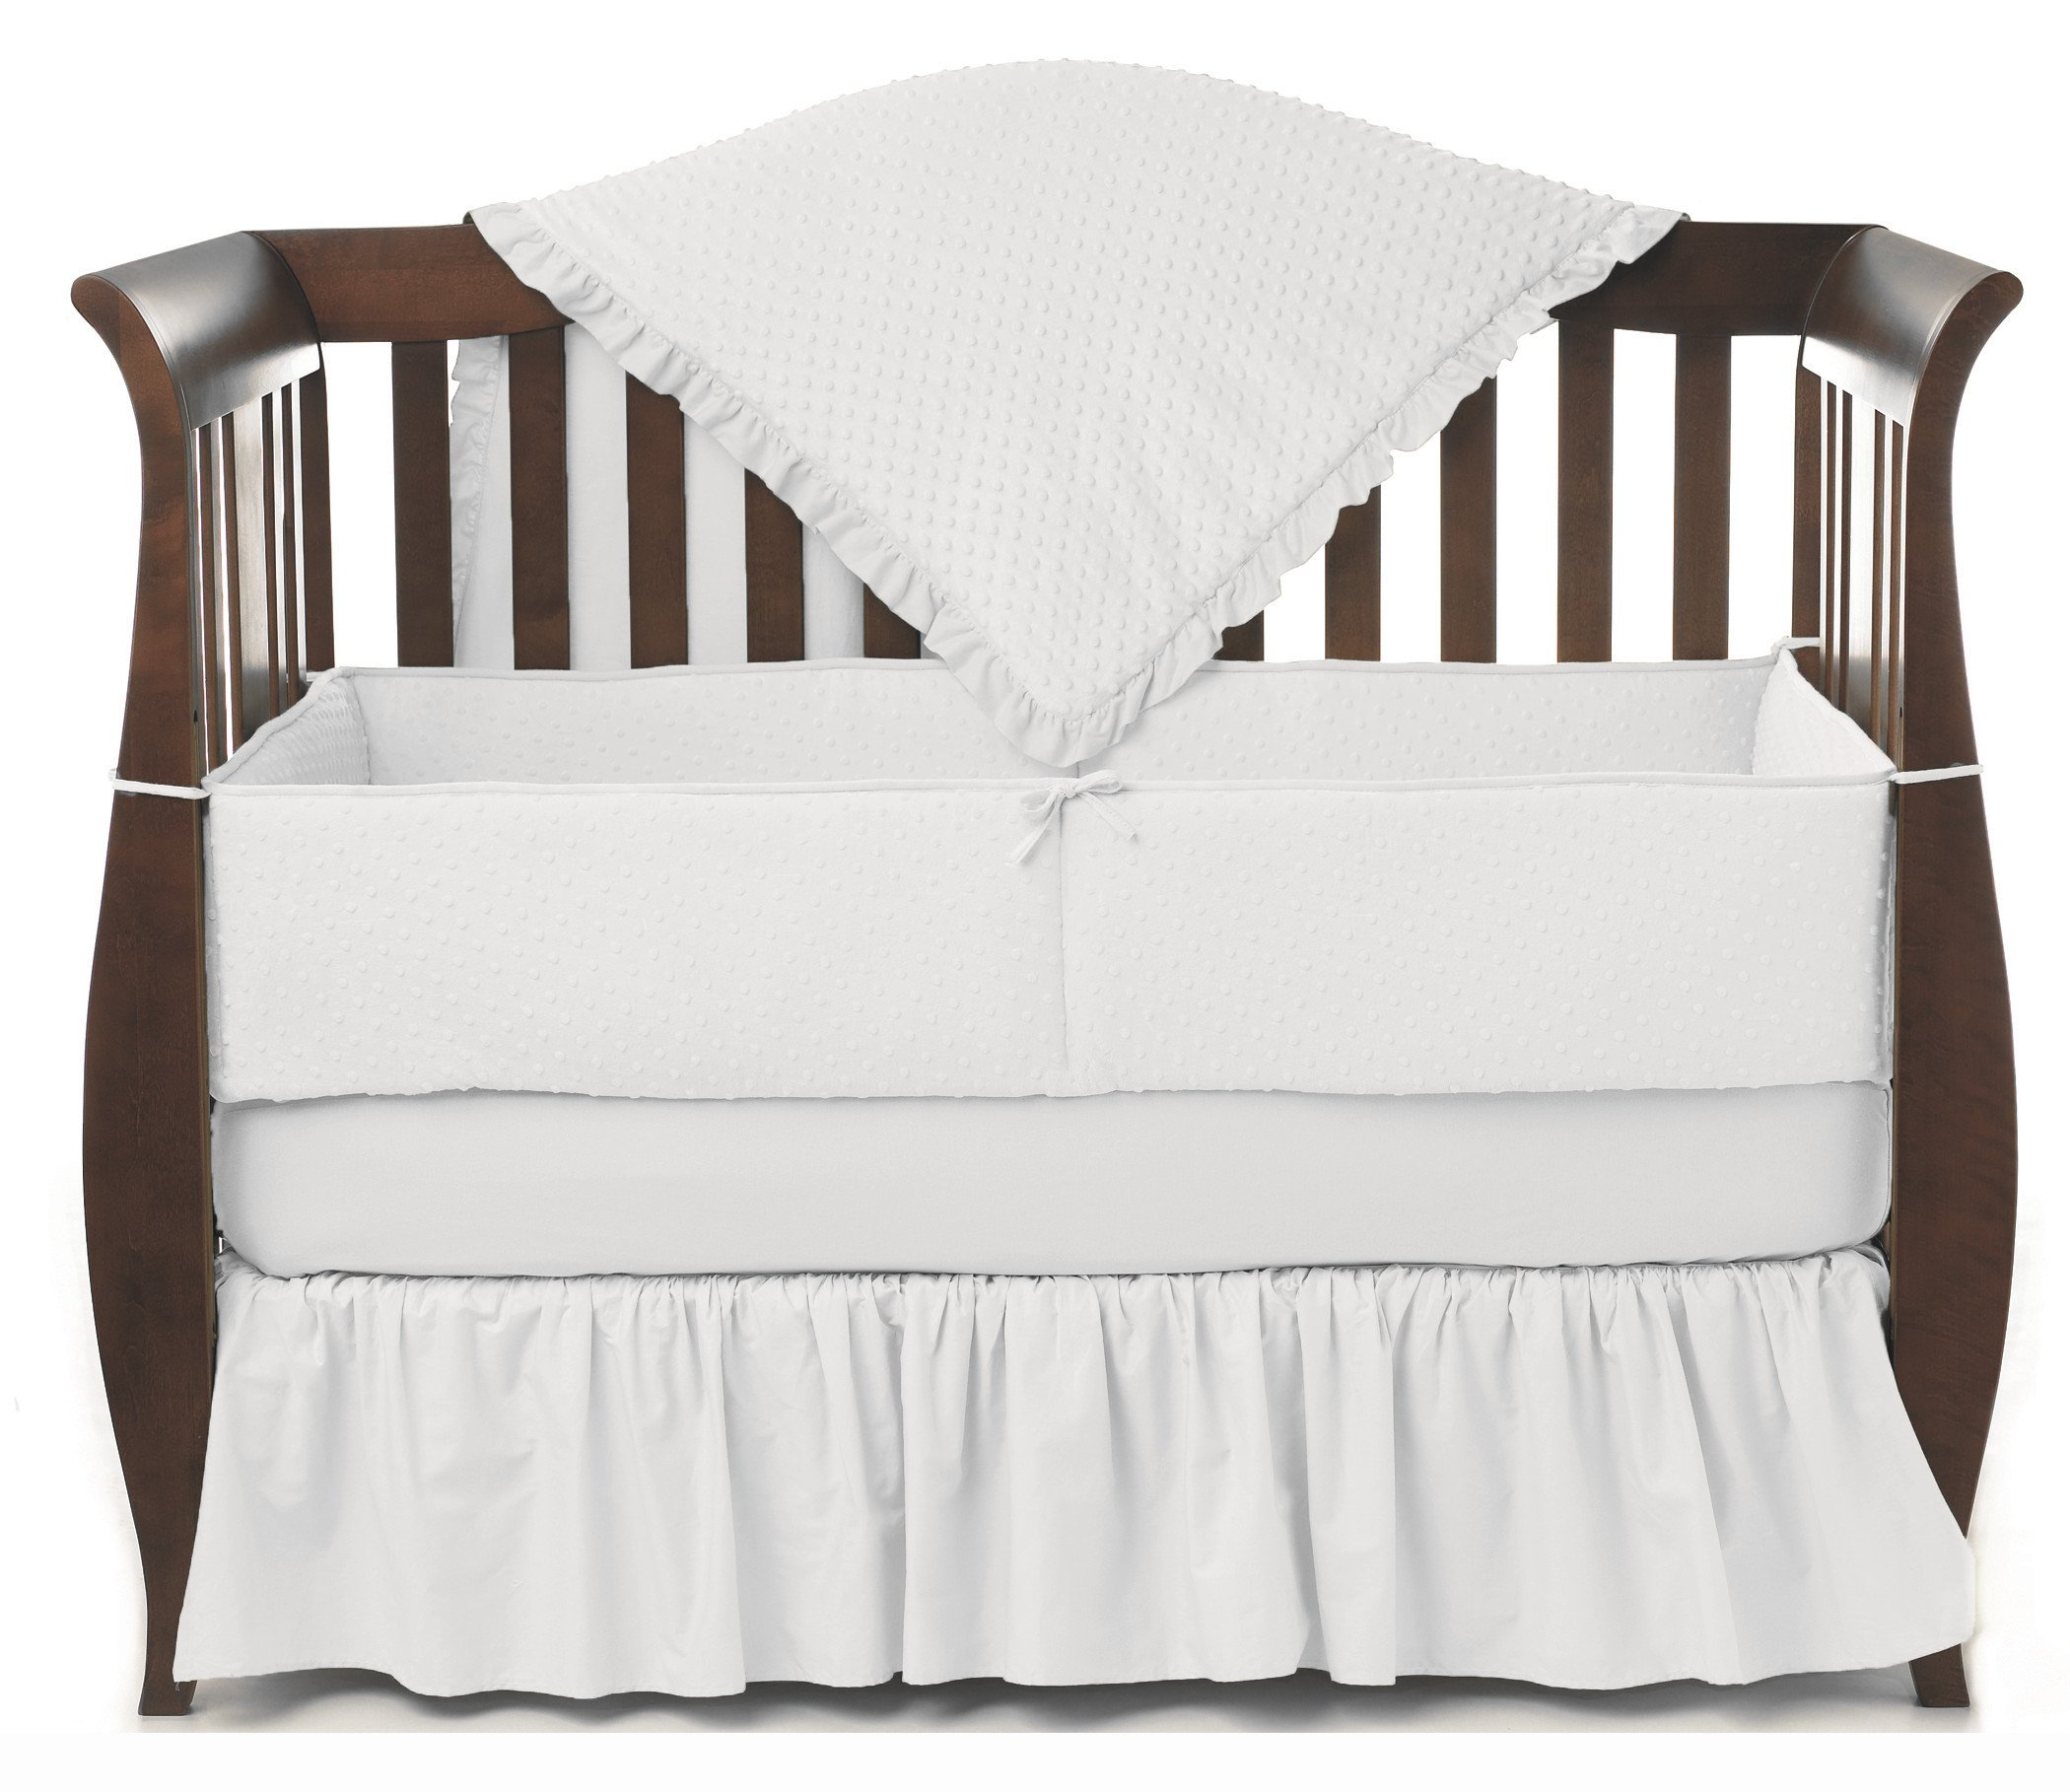 American Baby Company Heavenly Soft Minky Dot 4-Piece Crib Bedding Set, White